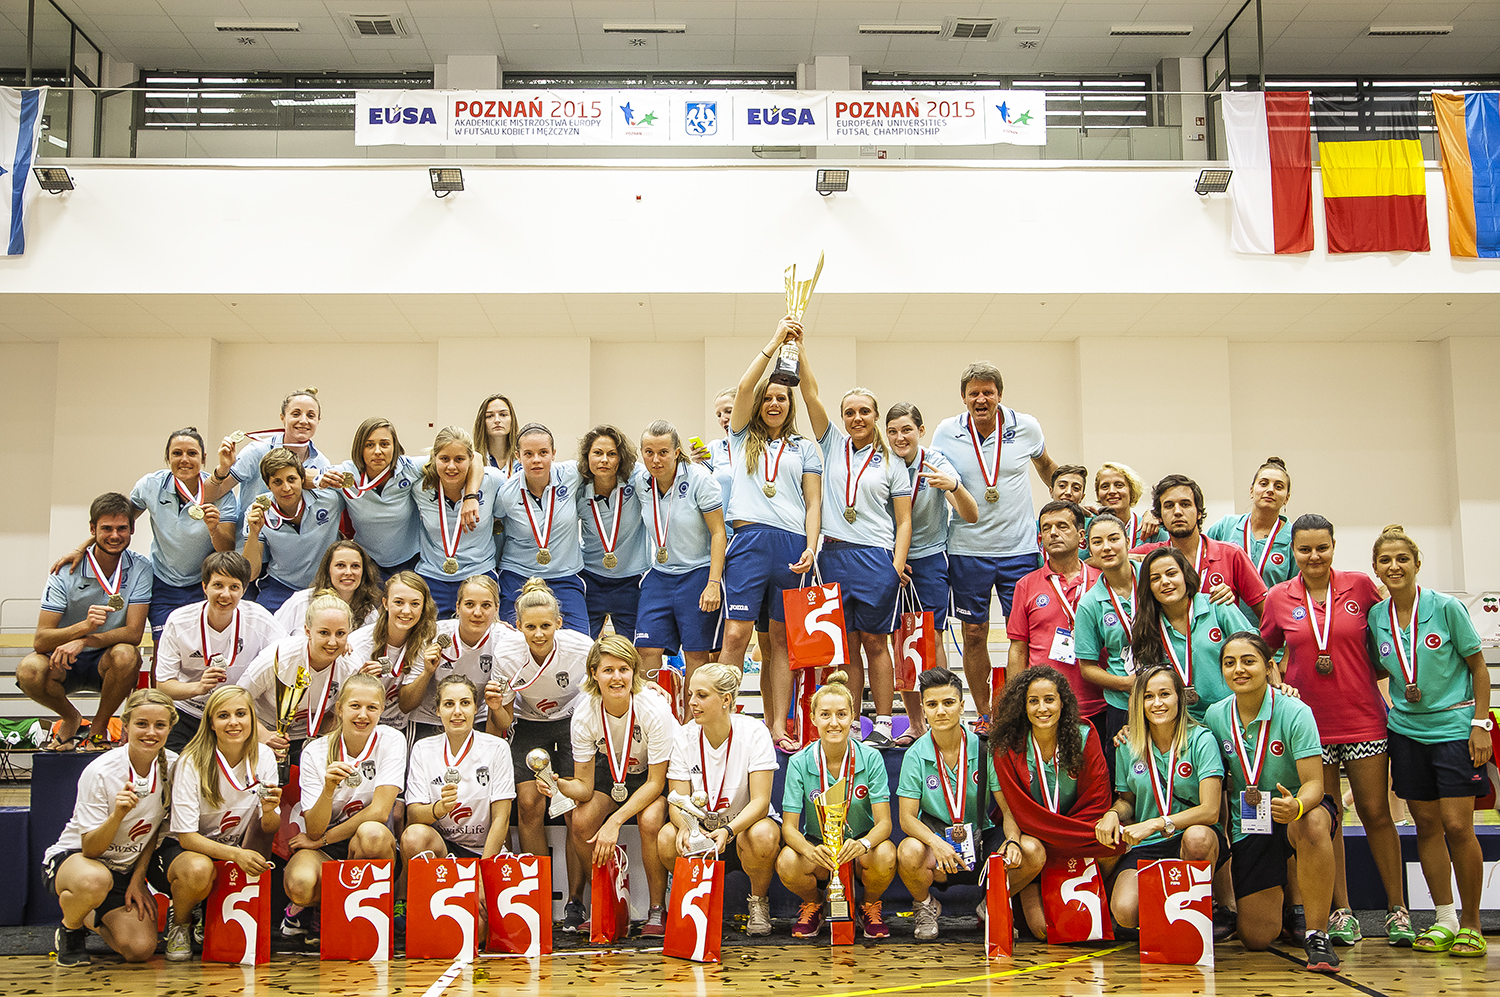 poznan 2015, EUSA, womens futsal, EUC Futsal 2015, женский футзал, European Universities Futsal Championship, Women competition, futsal